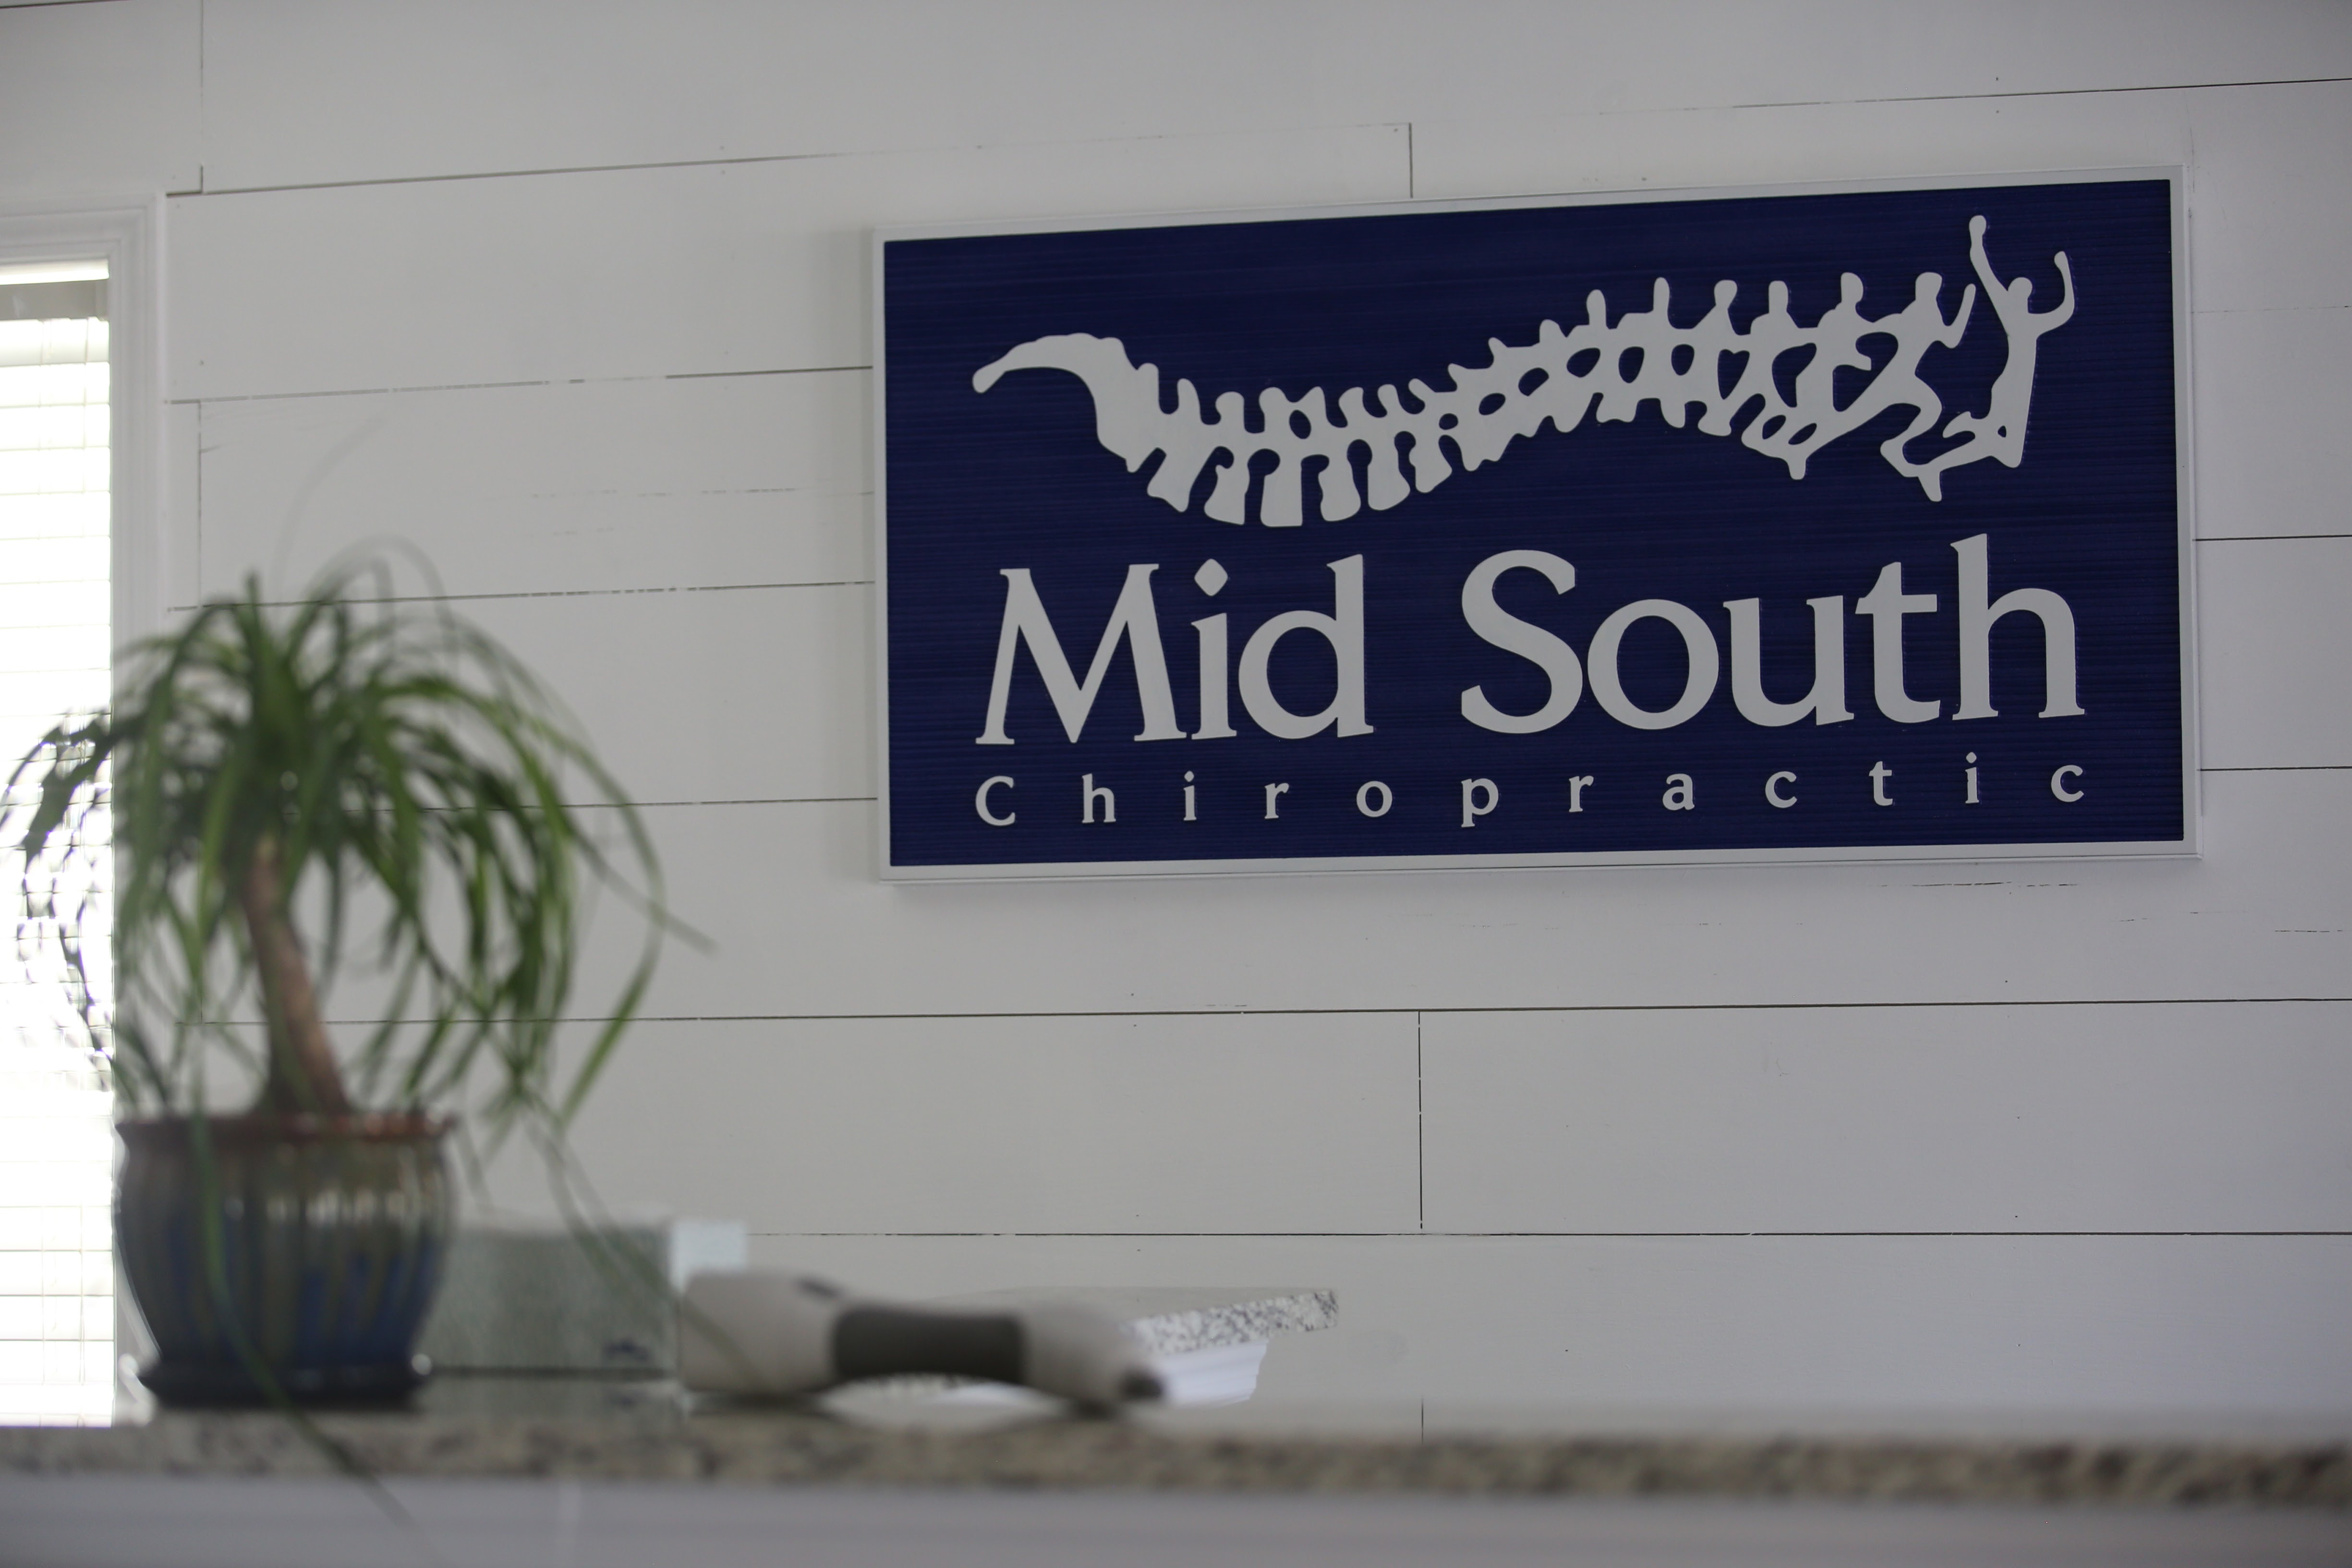 Mid South Chiropractic image 1